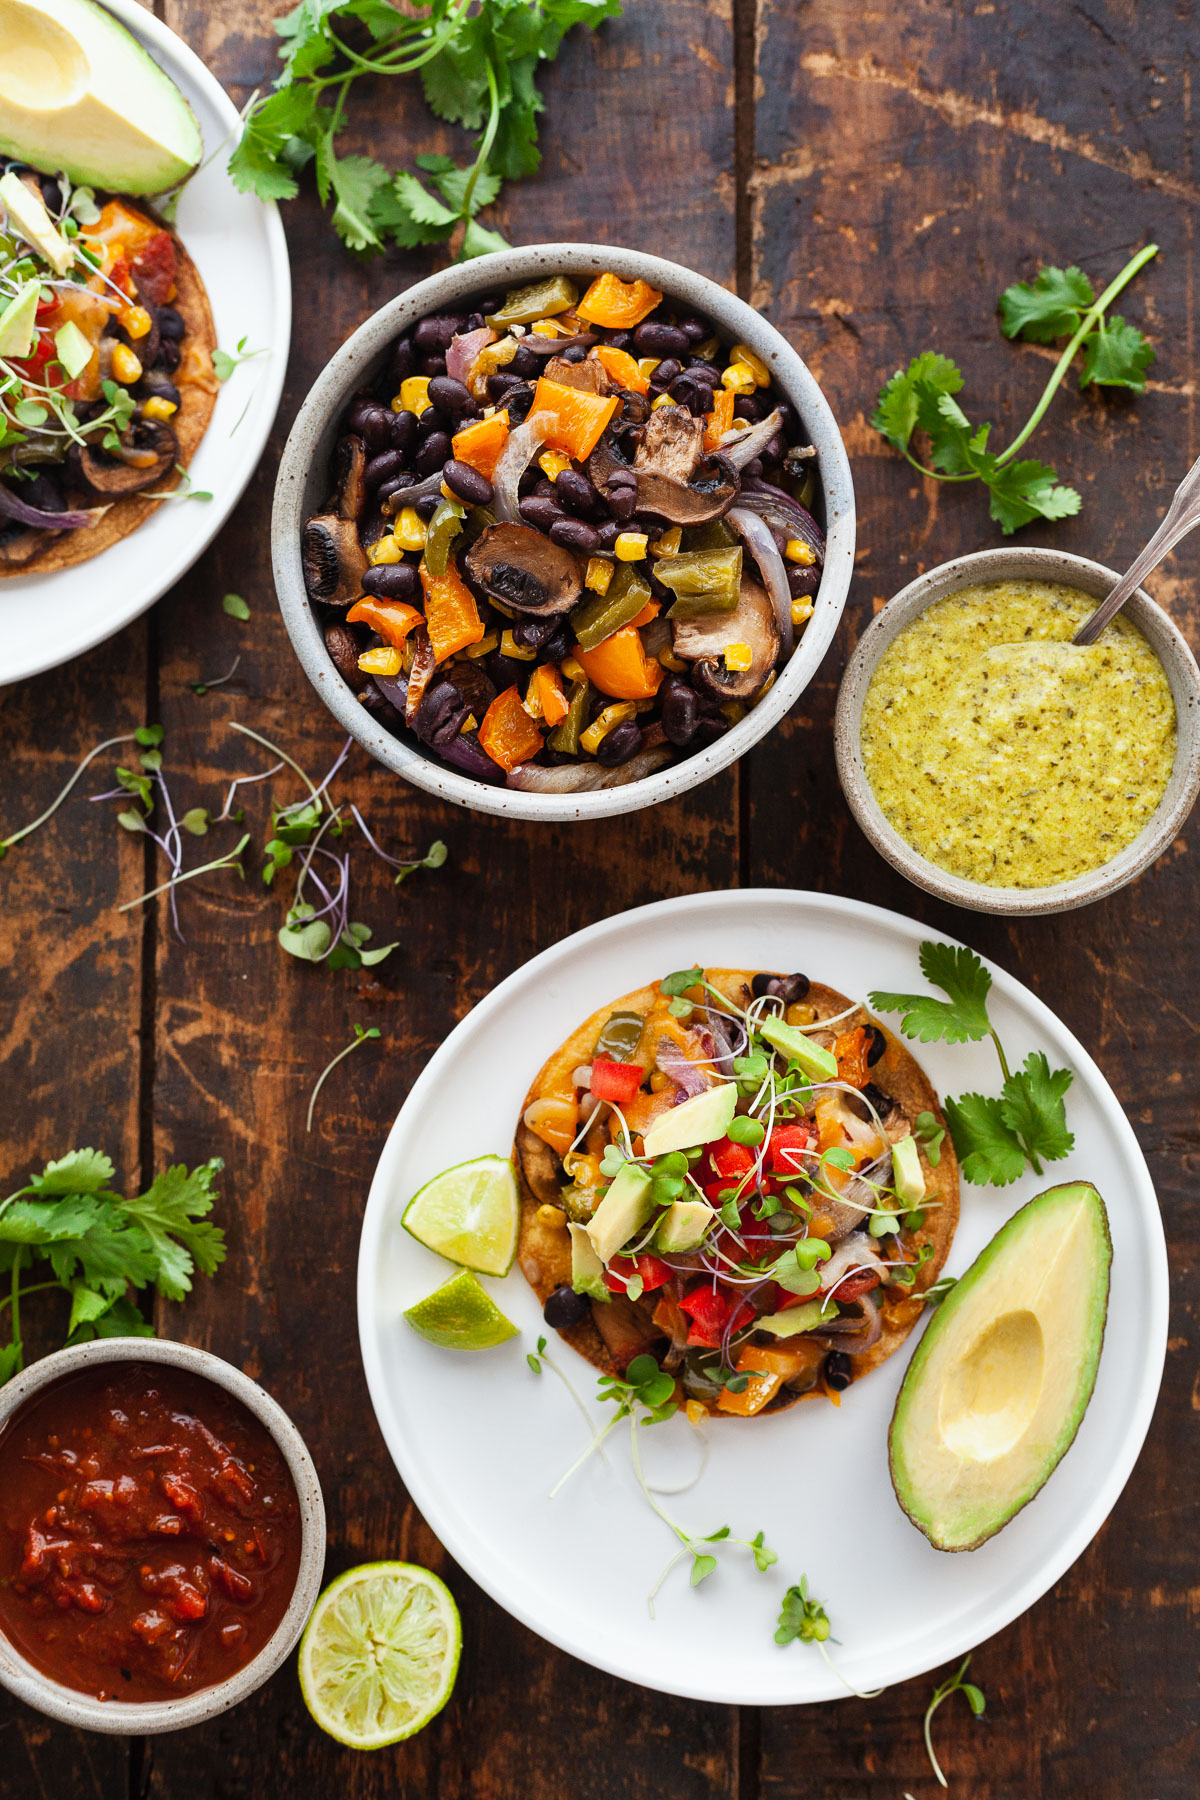 image of everything needed for roasted veggie tostadas. White plate wi.th veggie tostada and avocado. Bowls with sauce and veggies on wooden table.